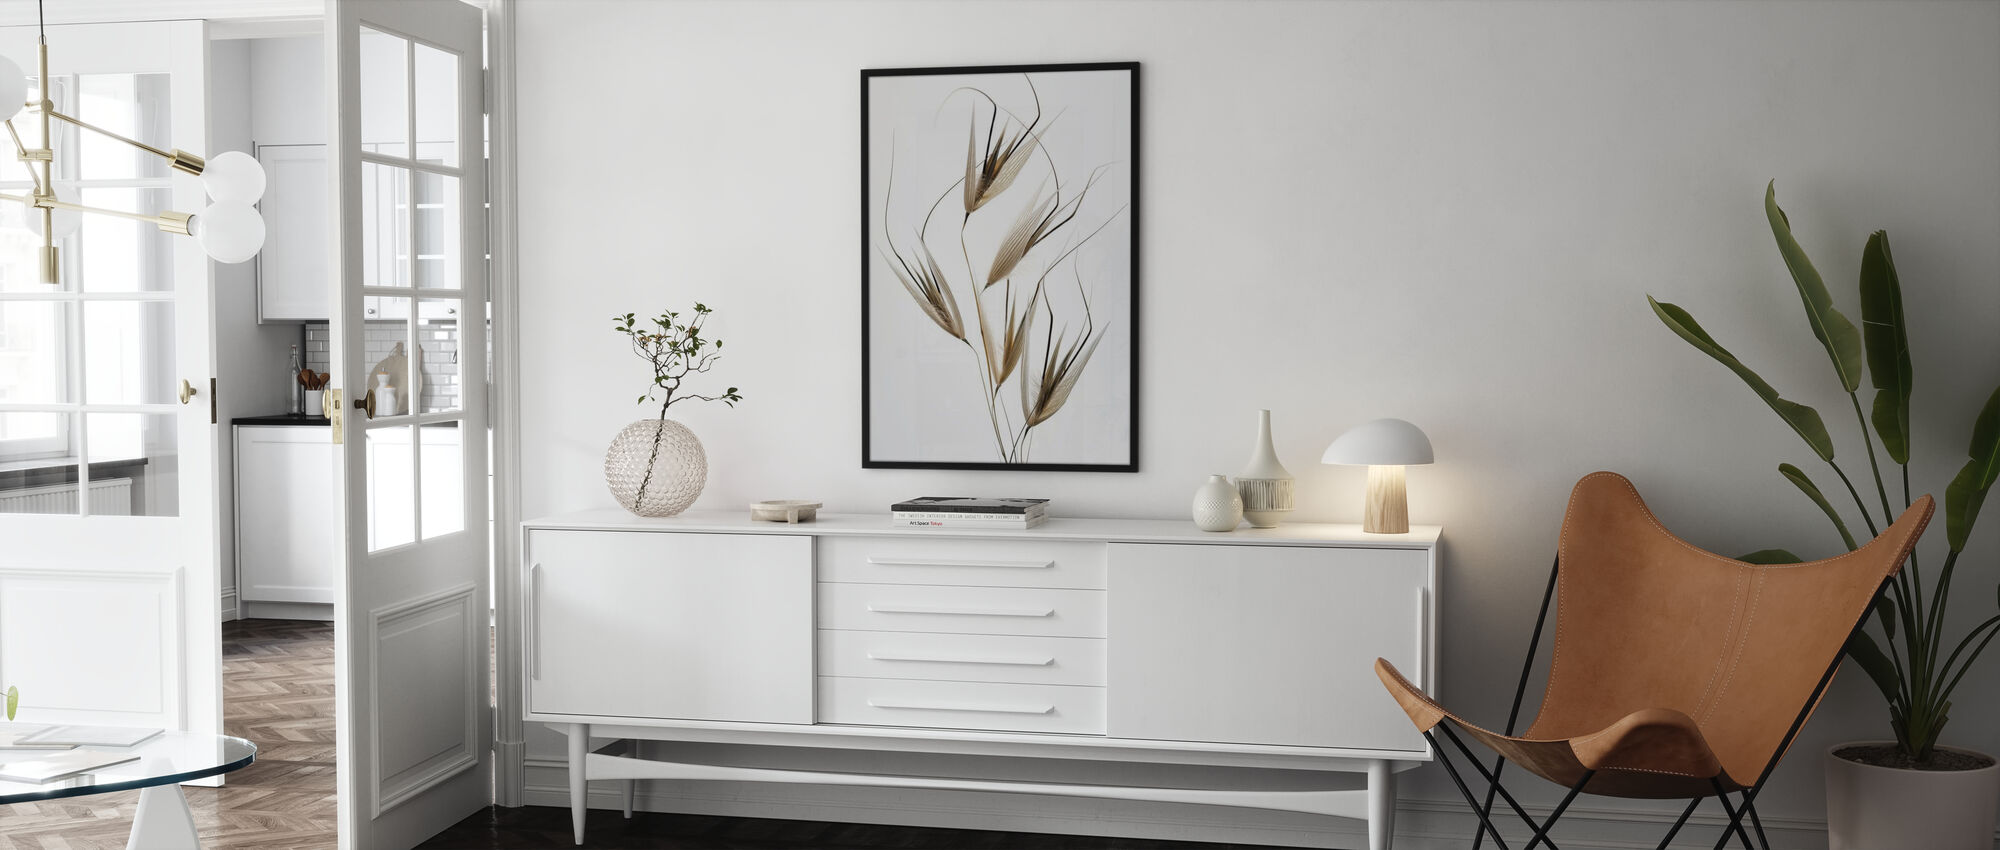 Delicacy of Nature - Framed print - Living Room